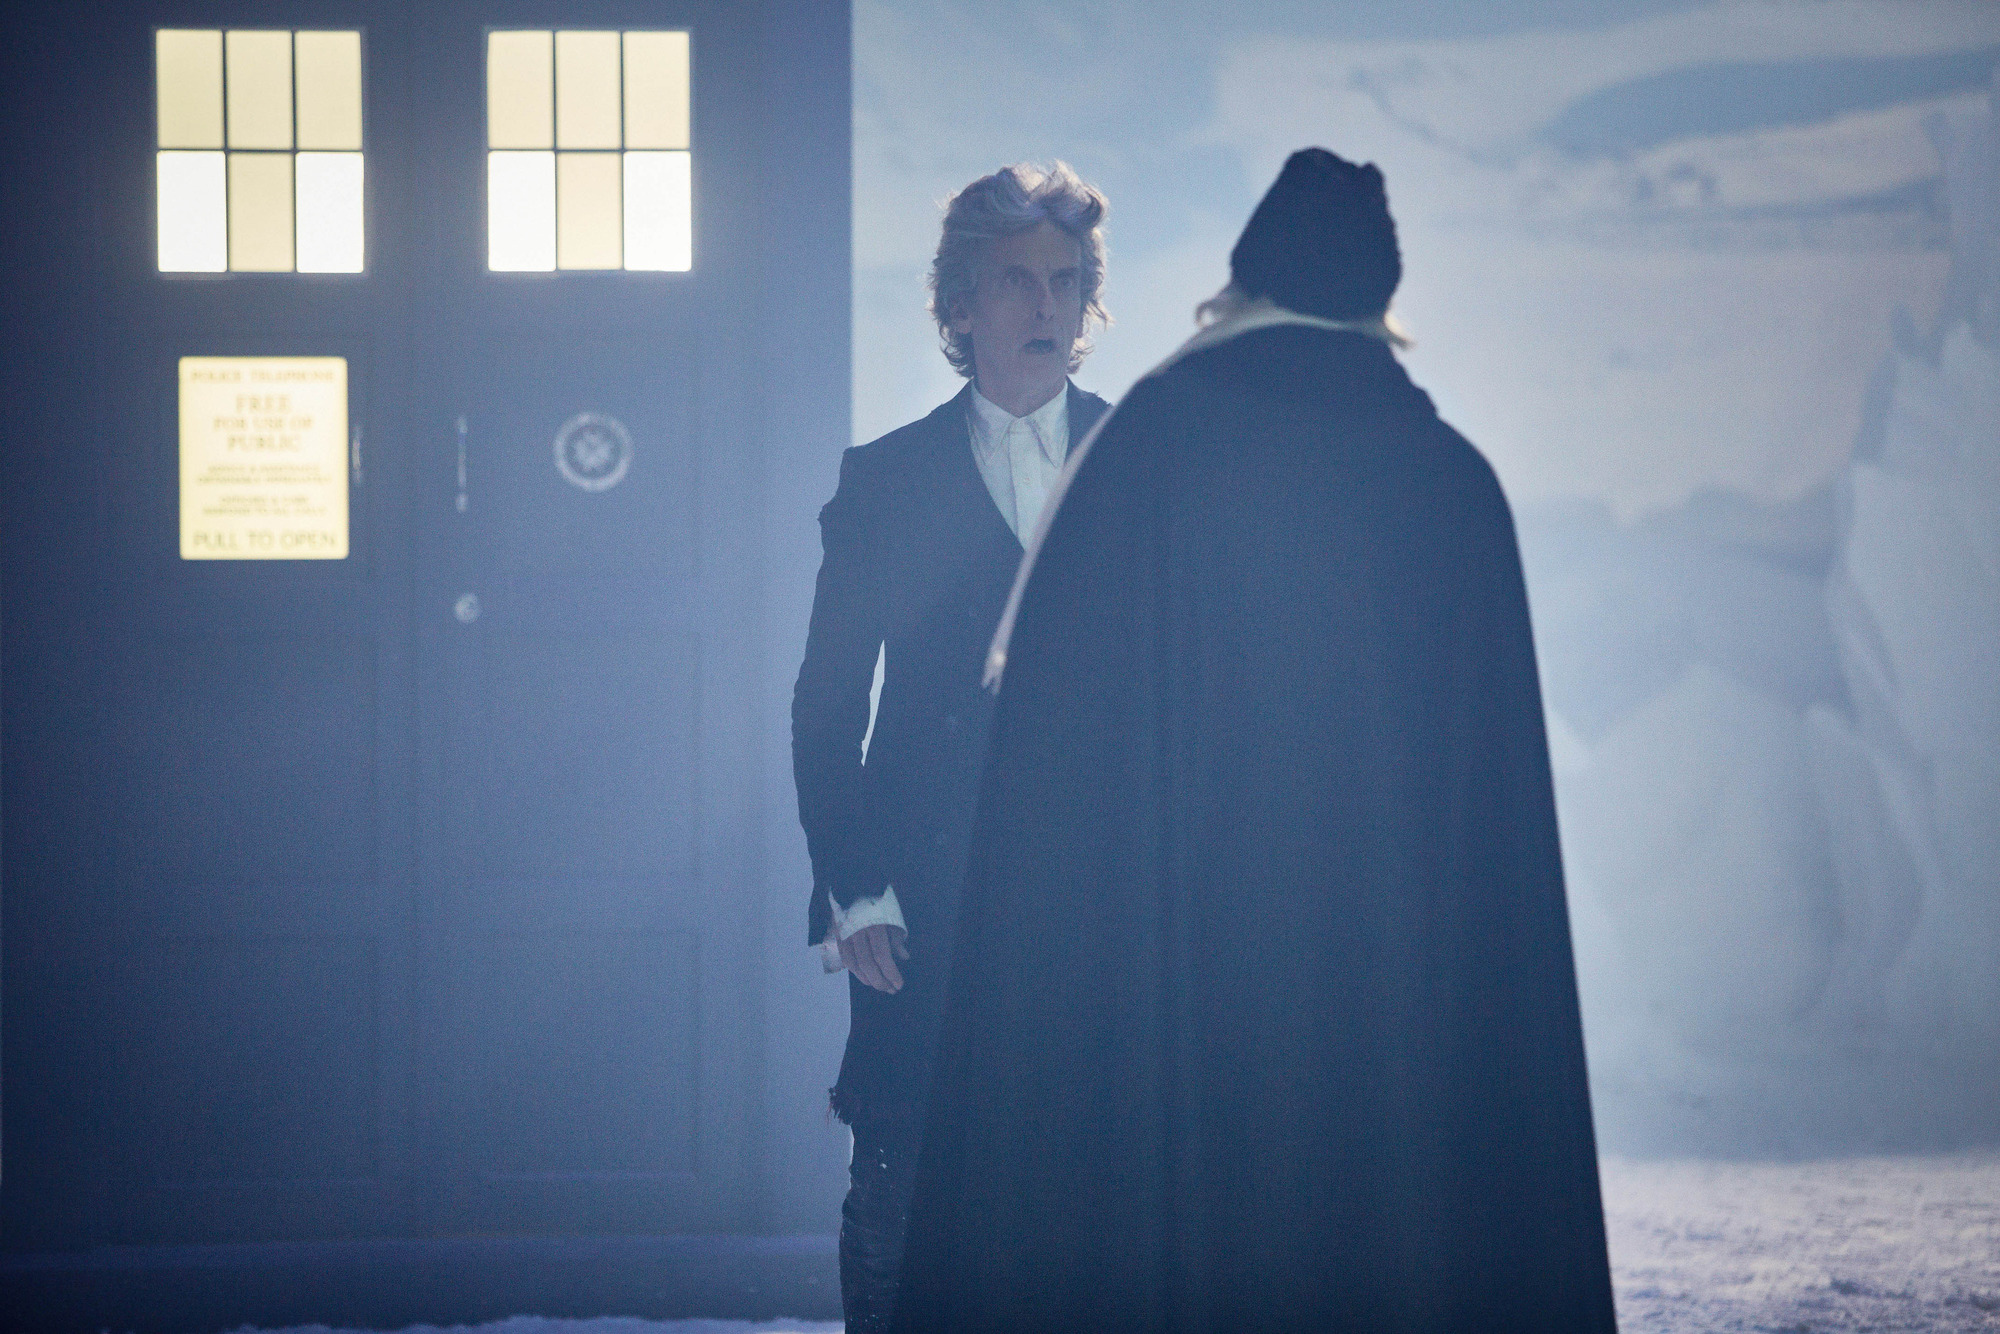 Peter Capaldi and David Bradley in the Doctor Who Christmas special